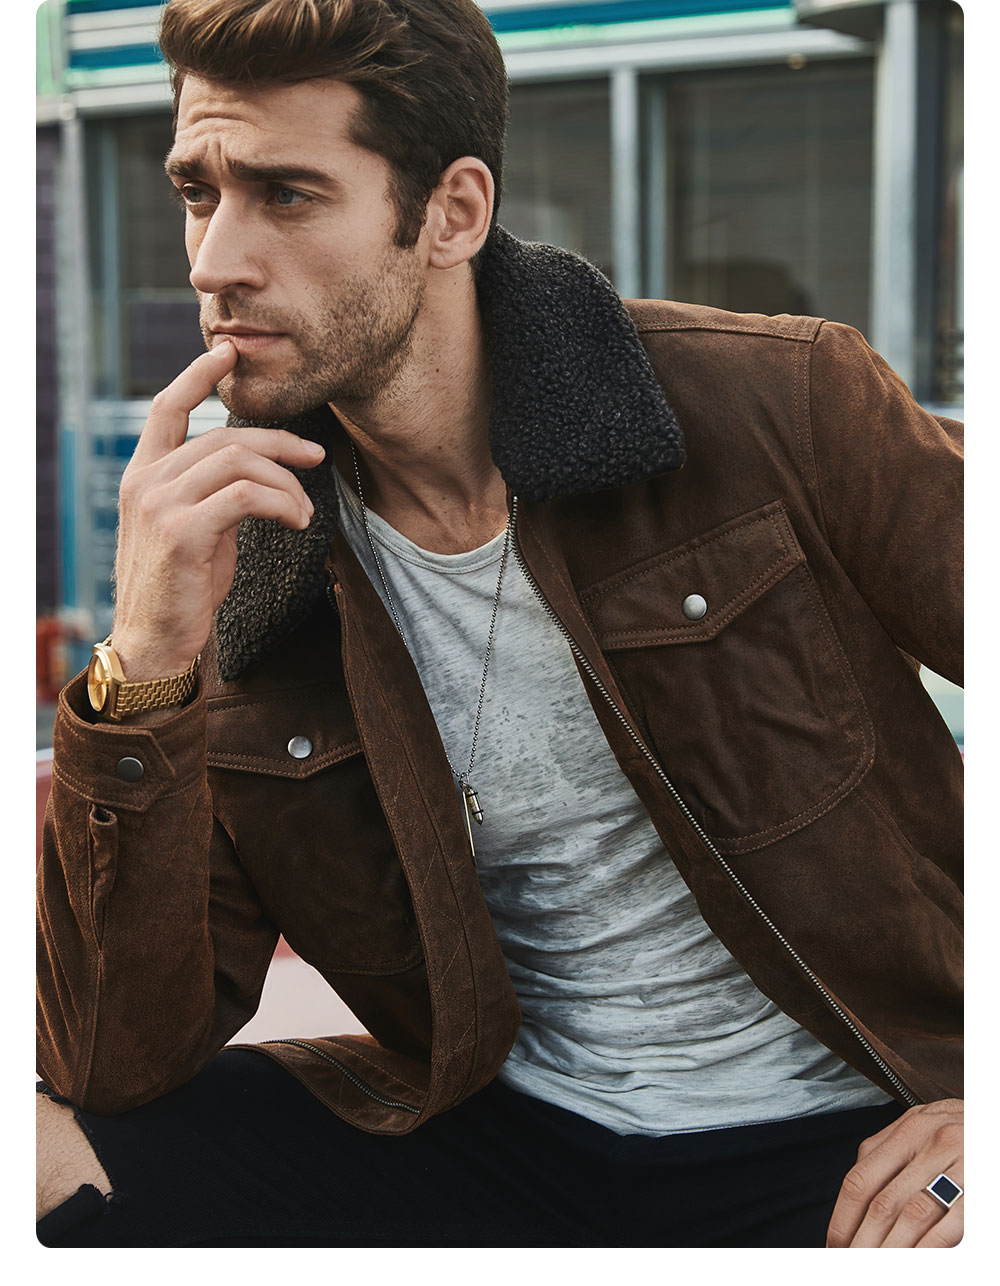 Hf25f14adec6e40f3a866b4055c039e73f FLAVOR Men's Real Leather Jacket Genuine Leather jacket with faux fur collar male Motorcycle warm coat Genuine Leather Jacket